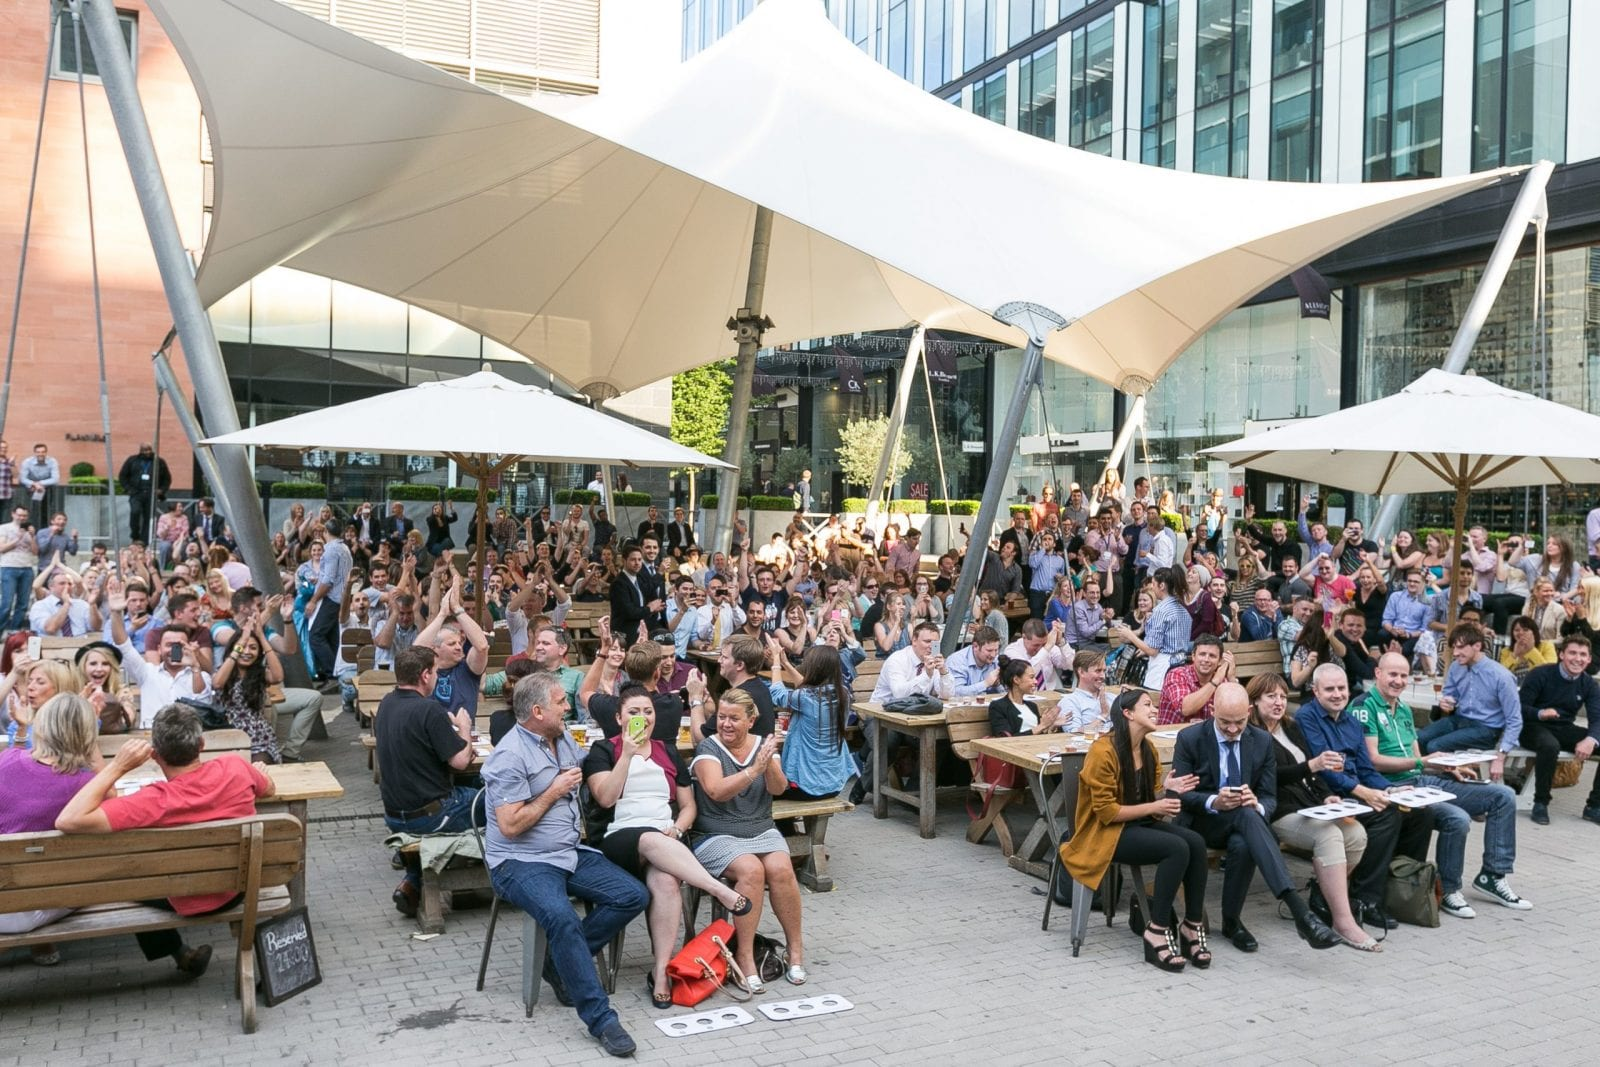 The best ways to watch England vs Scotland's Euro 2020 game this Friday in Manchester, The Manc